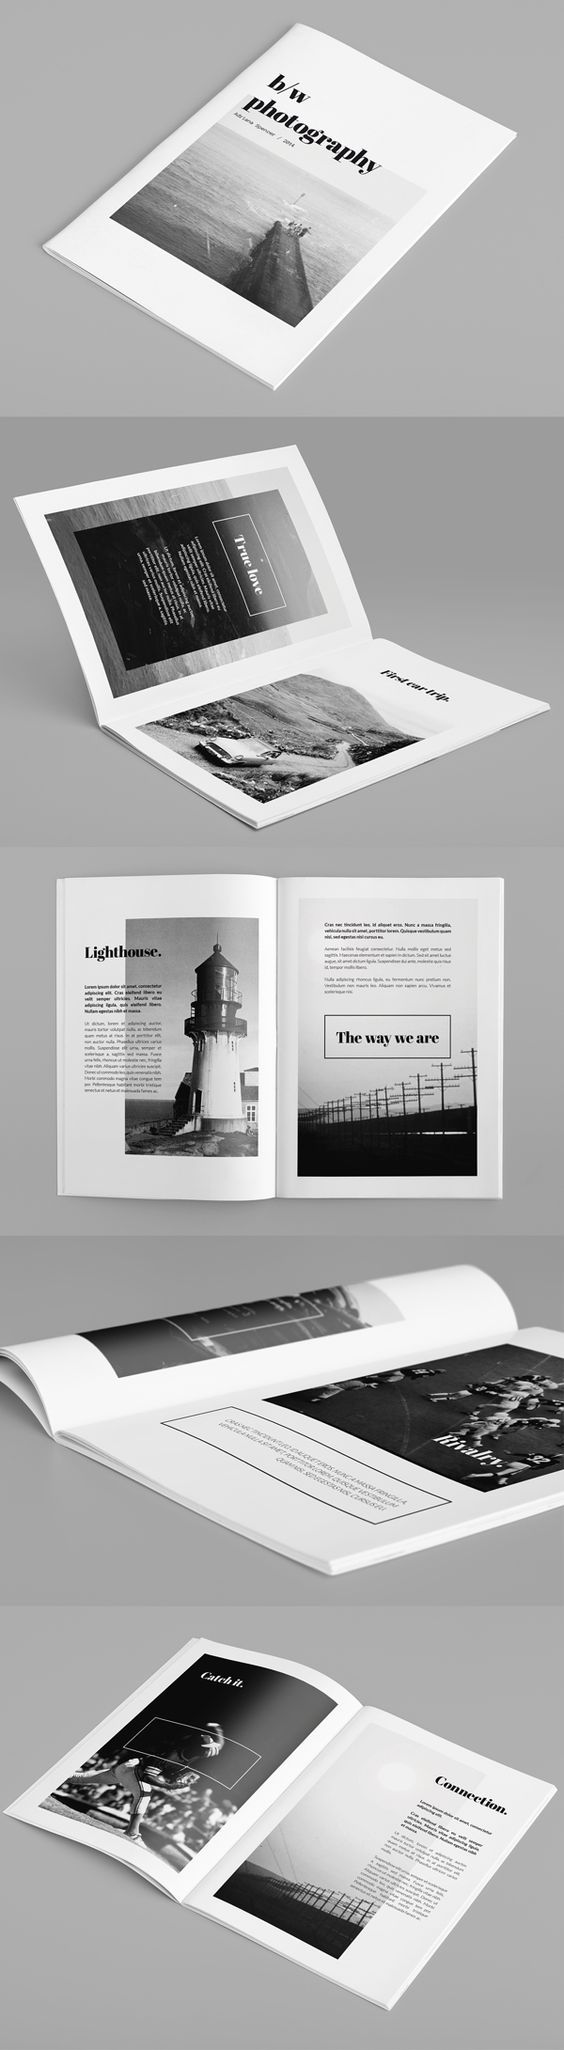 Minimal Photography Portfolio Brochure by Rounded Hexagon, via Behance: